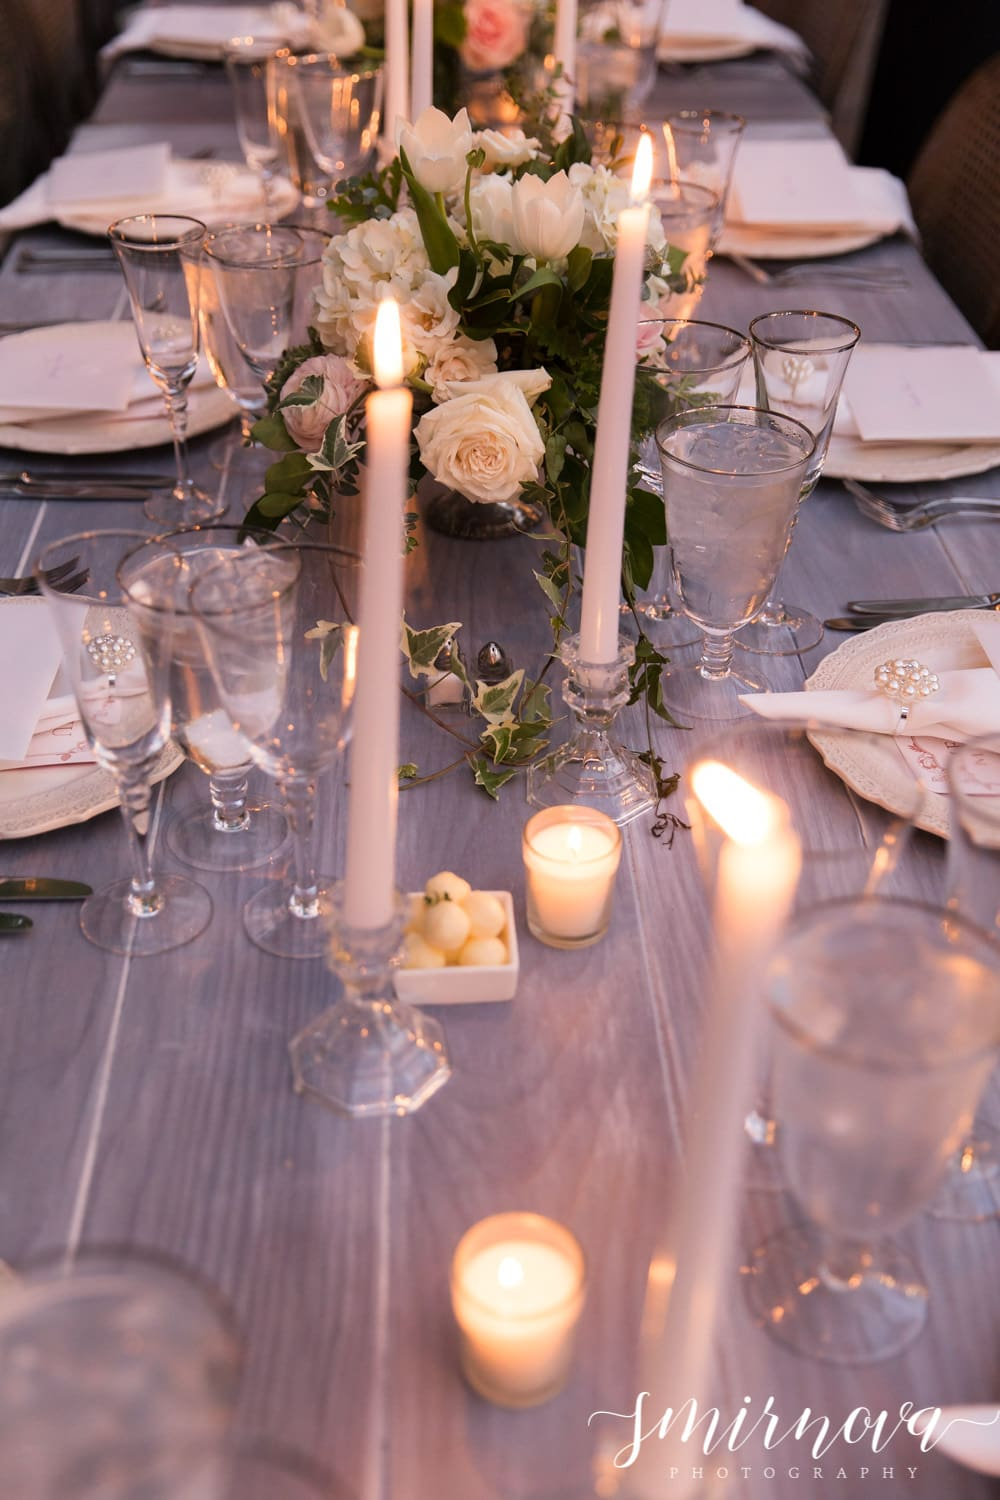 blush candlelit wedding reception decorations Smirnova Photography by Alyssa